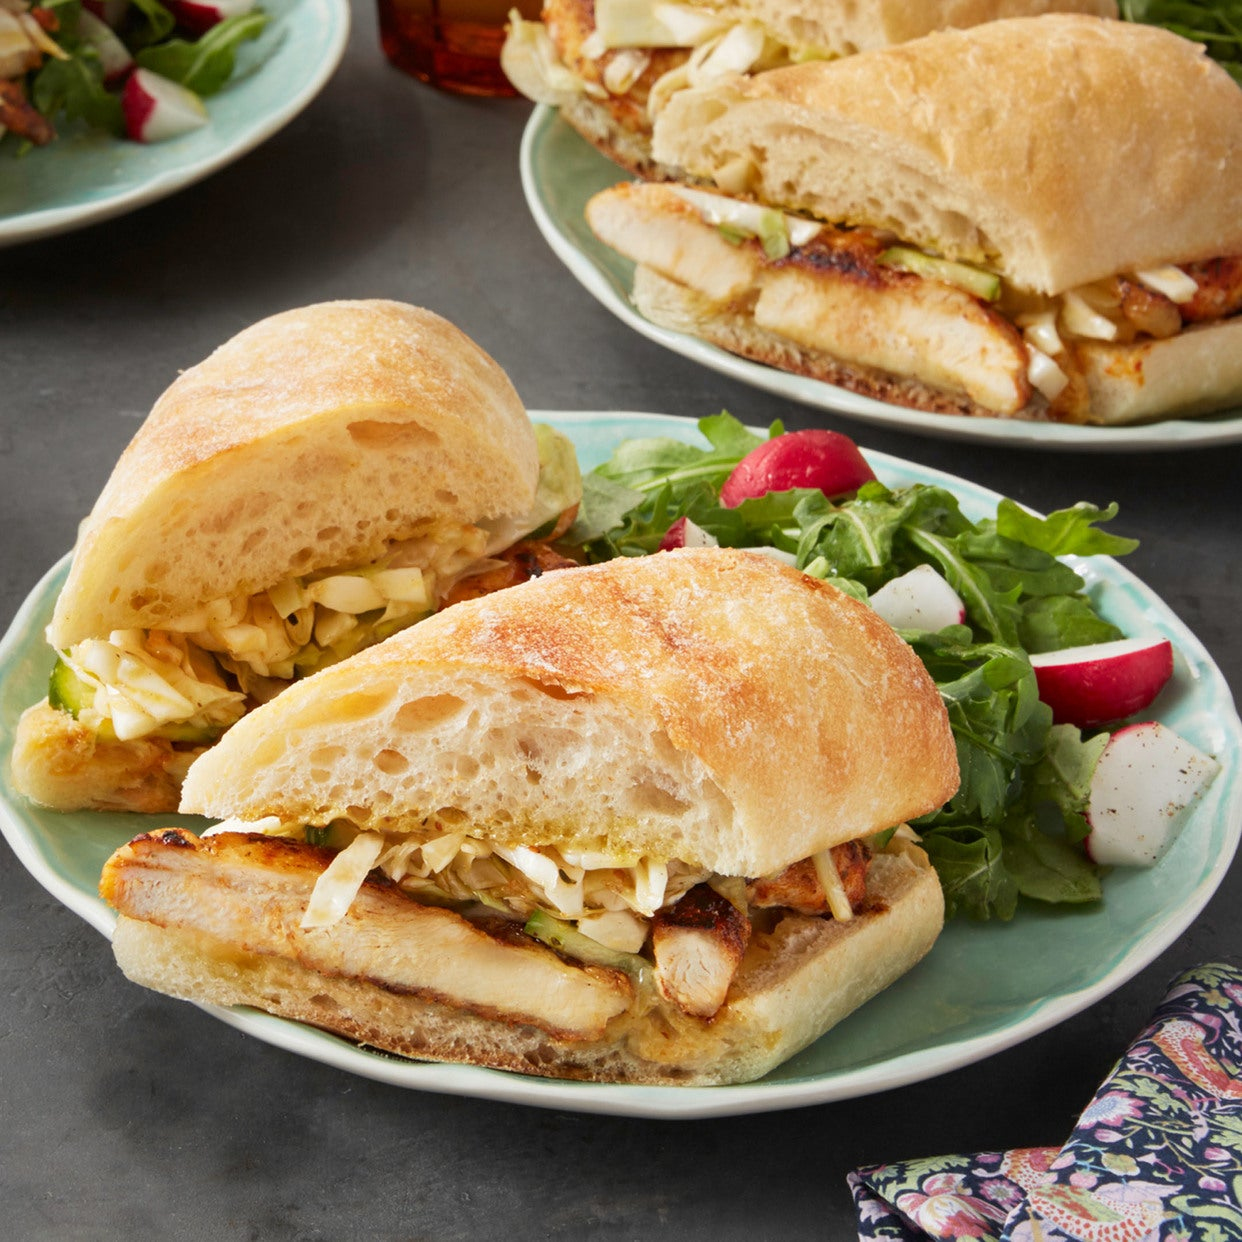 Cajun Chicken Sandwiches with Quick Pickles & Arugula Salad